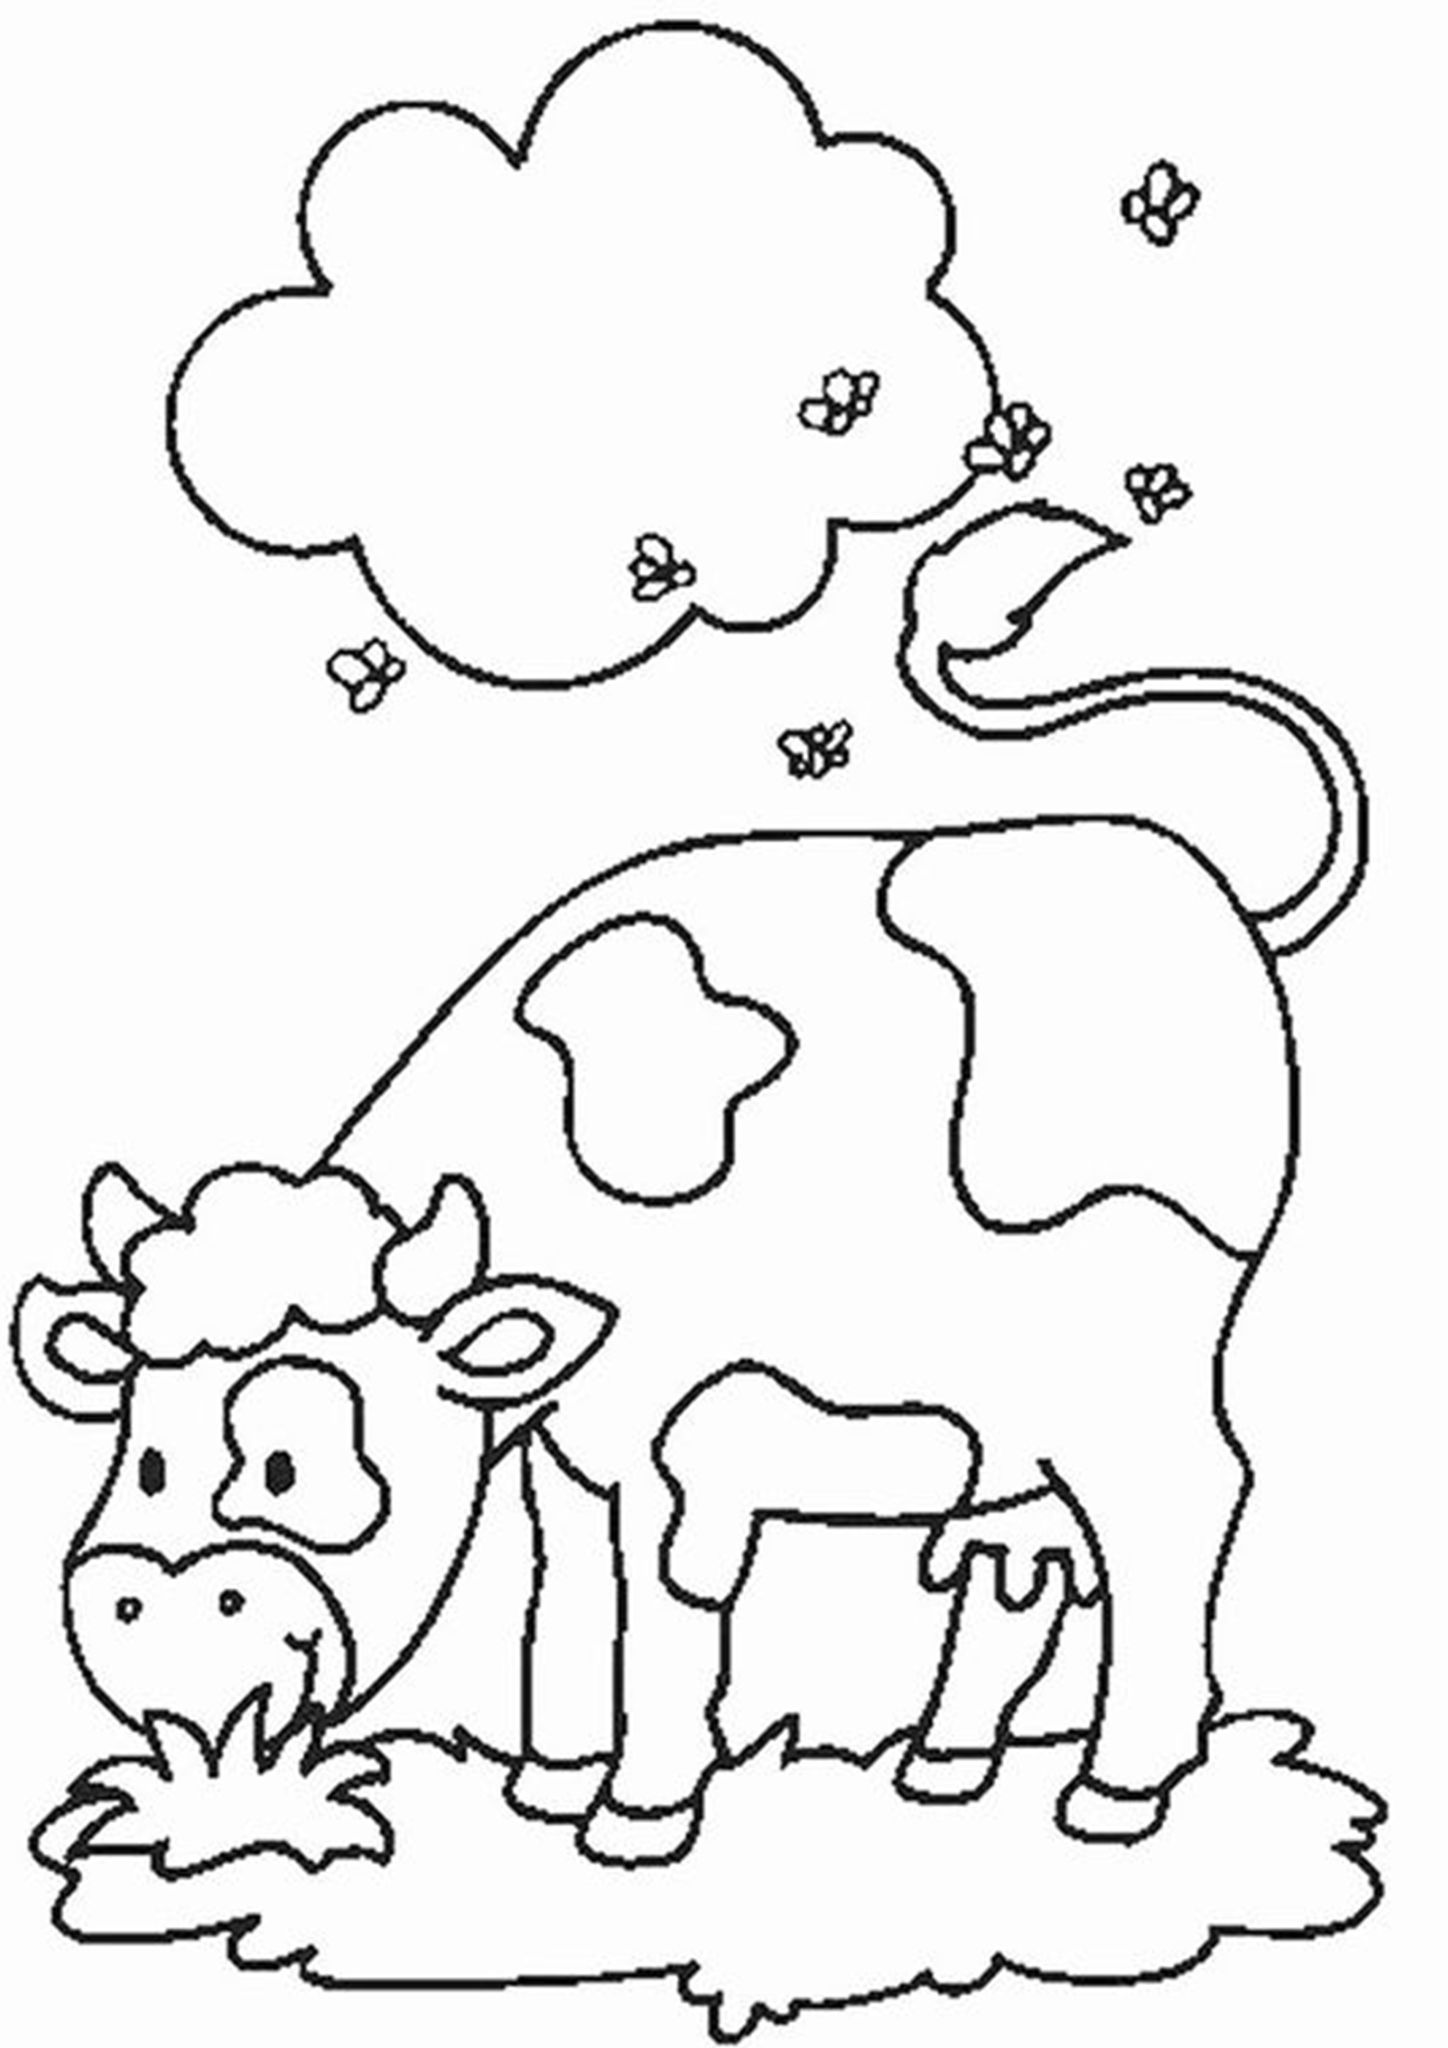 Turma Da Monica Girl And Cow Coloring Page Cow Coloring Pages Coloring Pages Printable Coloring Book